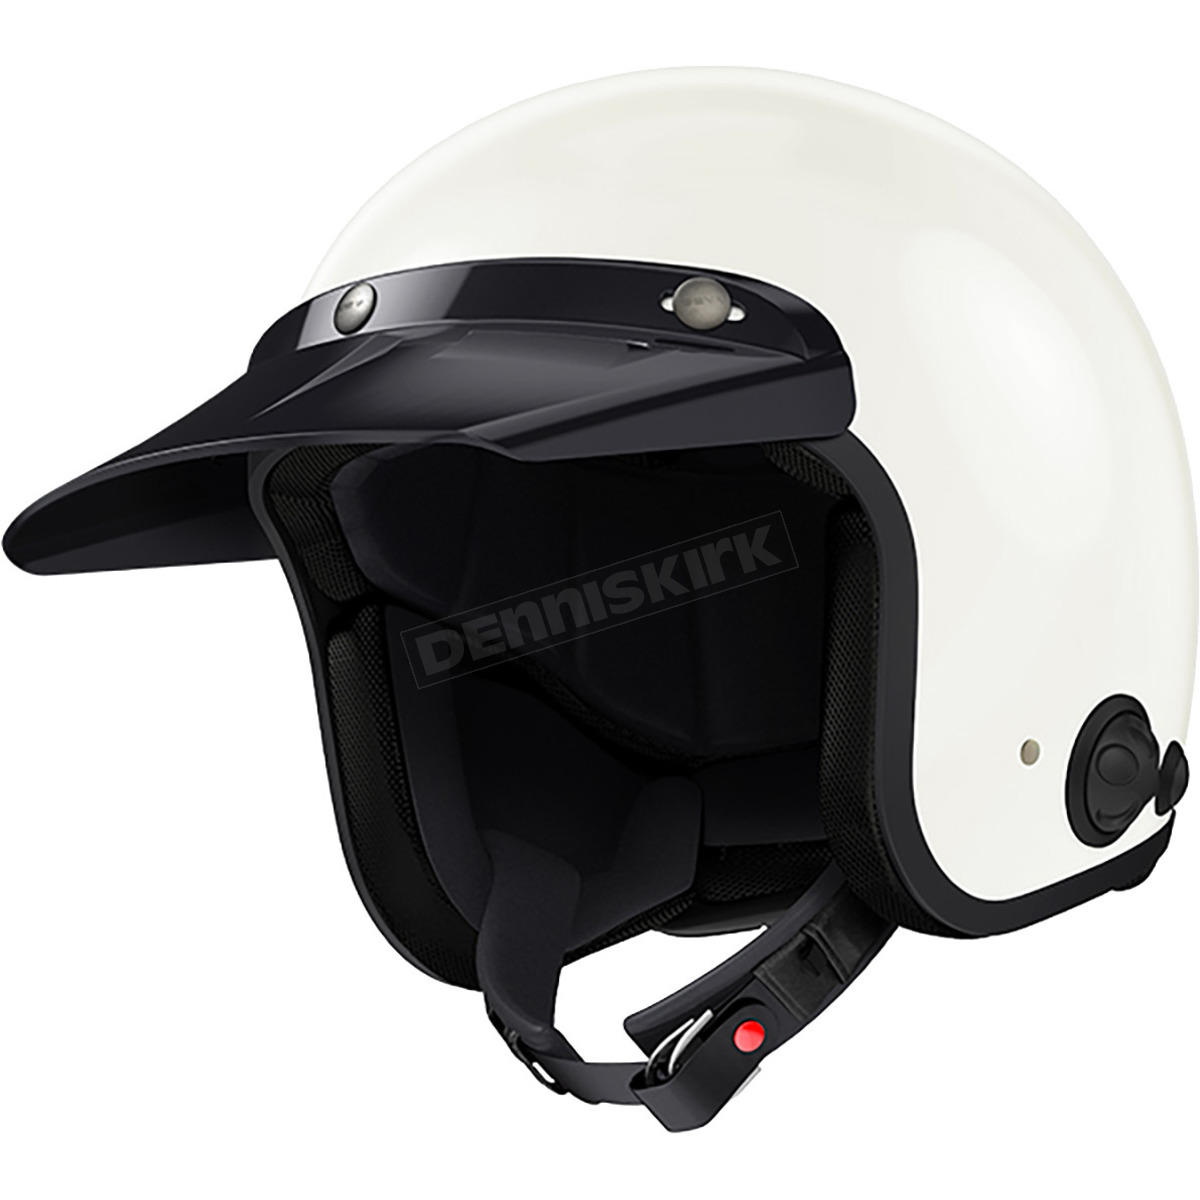 c4f592d0e70 Sena White Savage Helmet - SAVAGE-CL-GW-XS-01 Harley Motorcycle ...